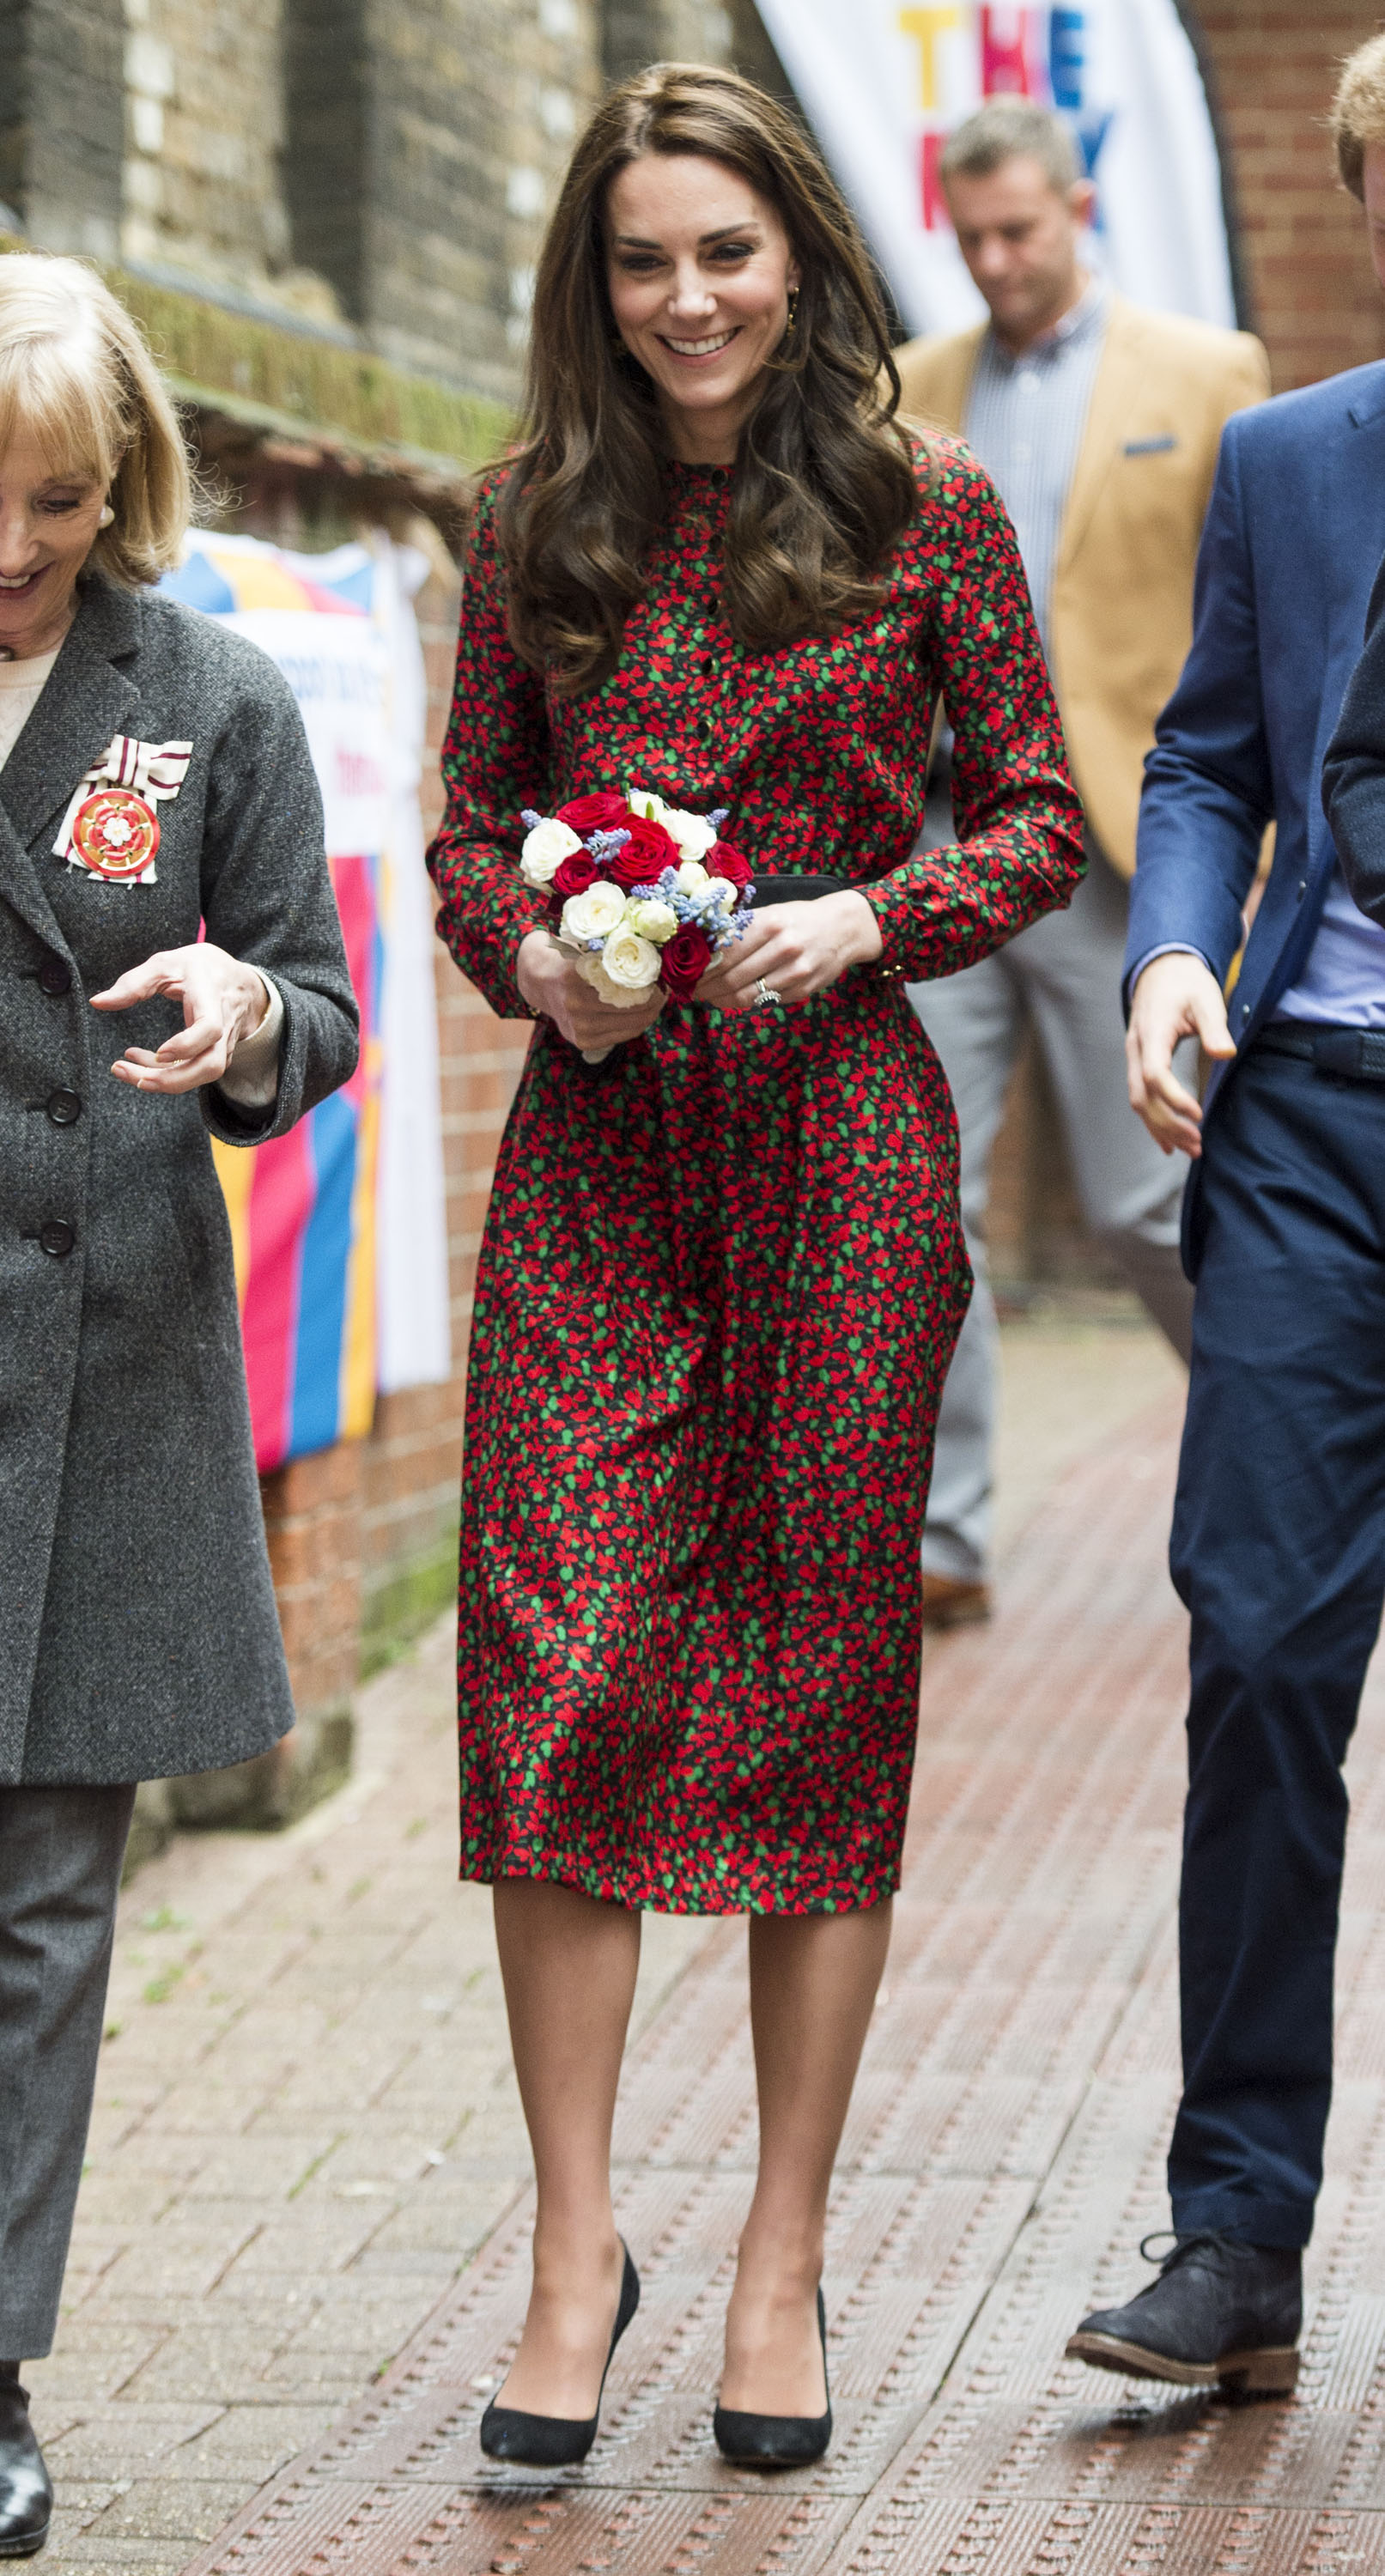 LONDON, ENGLAND - DECEMBER 19:  Catherine, Duchess of Cambridge attends a Christmas party for volunteers at The Mix youth service on December 19, 2016 in London, England.  The Mix youth service works with Their Royal Highnesses' Heads Together Campaign.  (Photo by Mark Cuthbert/UK Press via Getty Images)